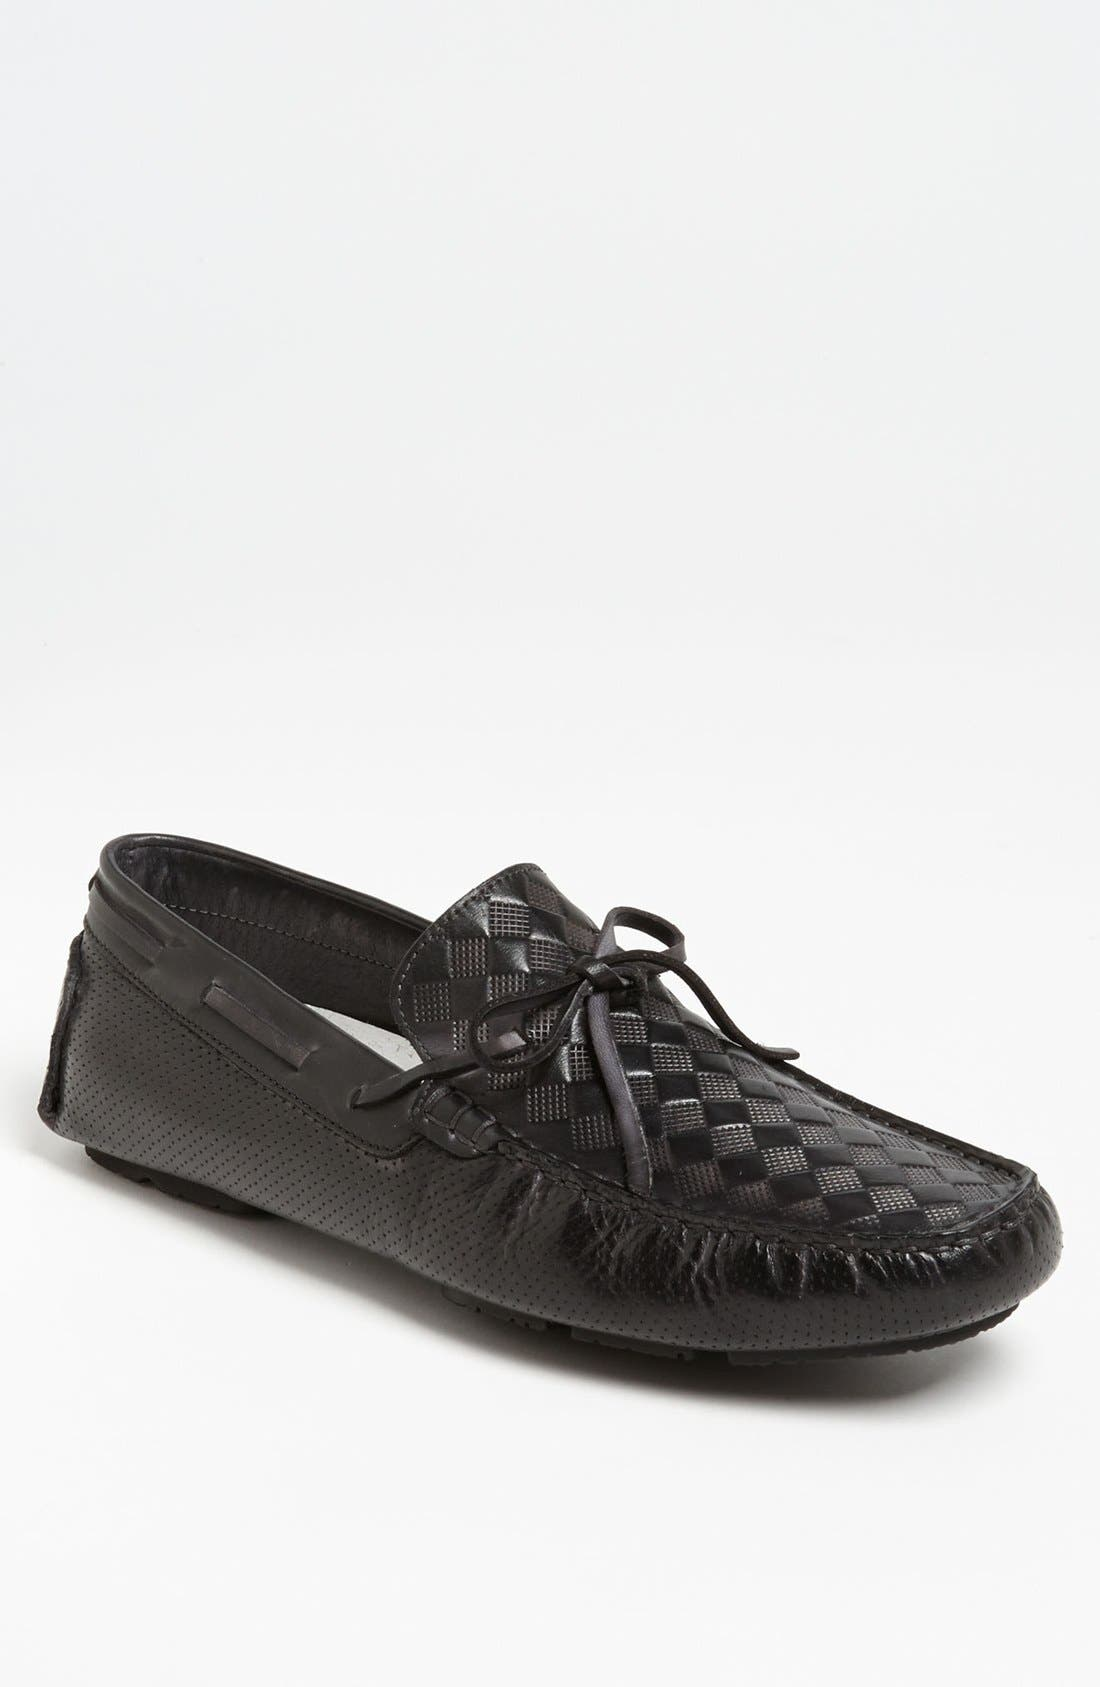 Alternate Image 1 Selected - Bacco Bucci 'Balotelli' Driving Shoe (Men)